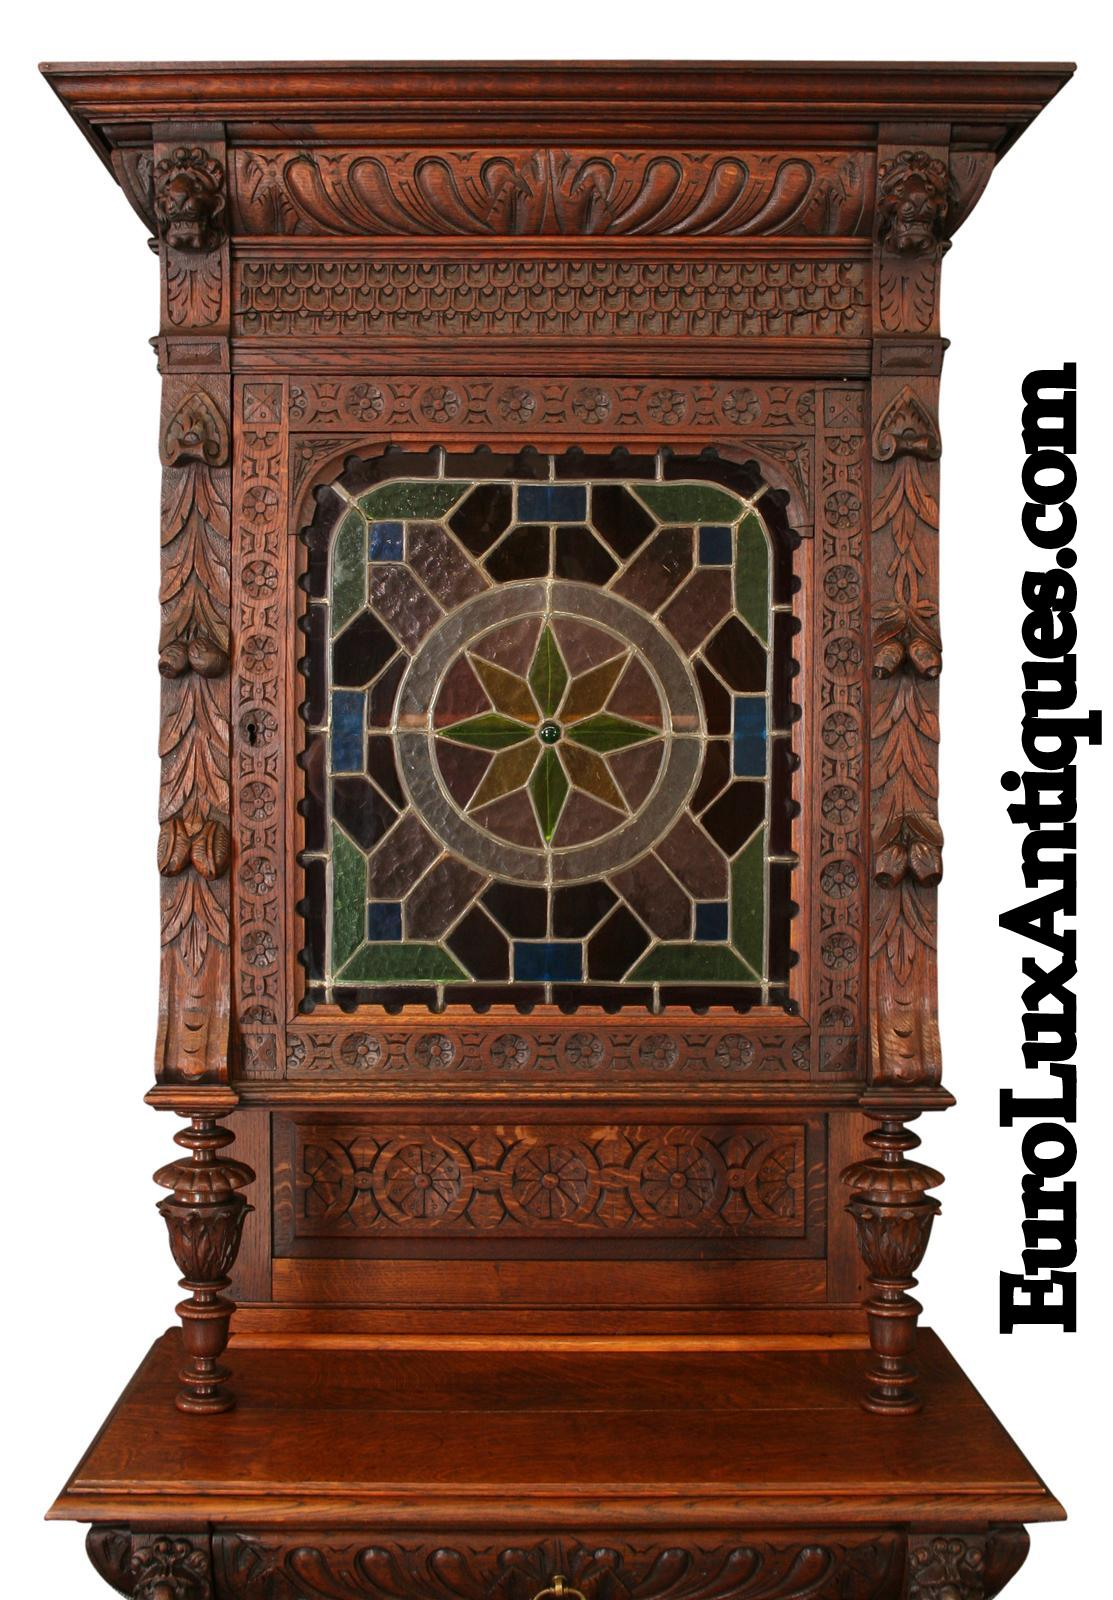 1900 Mechelen Buffet Stained Glass Door